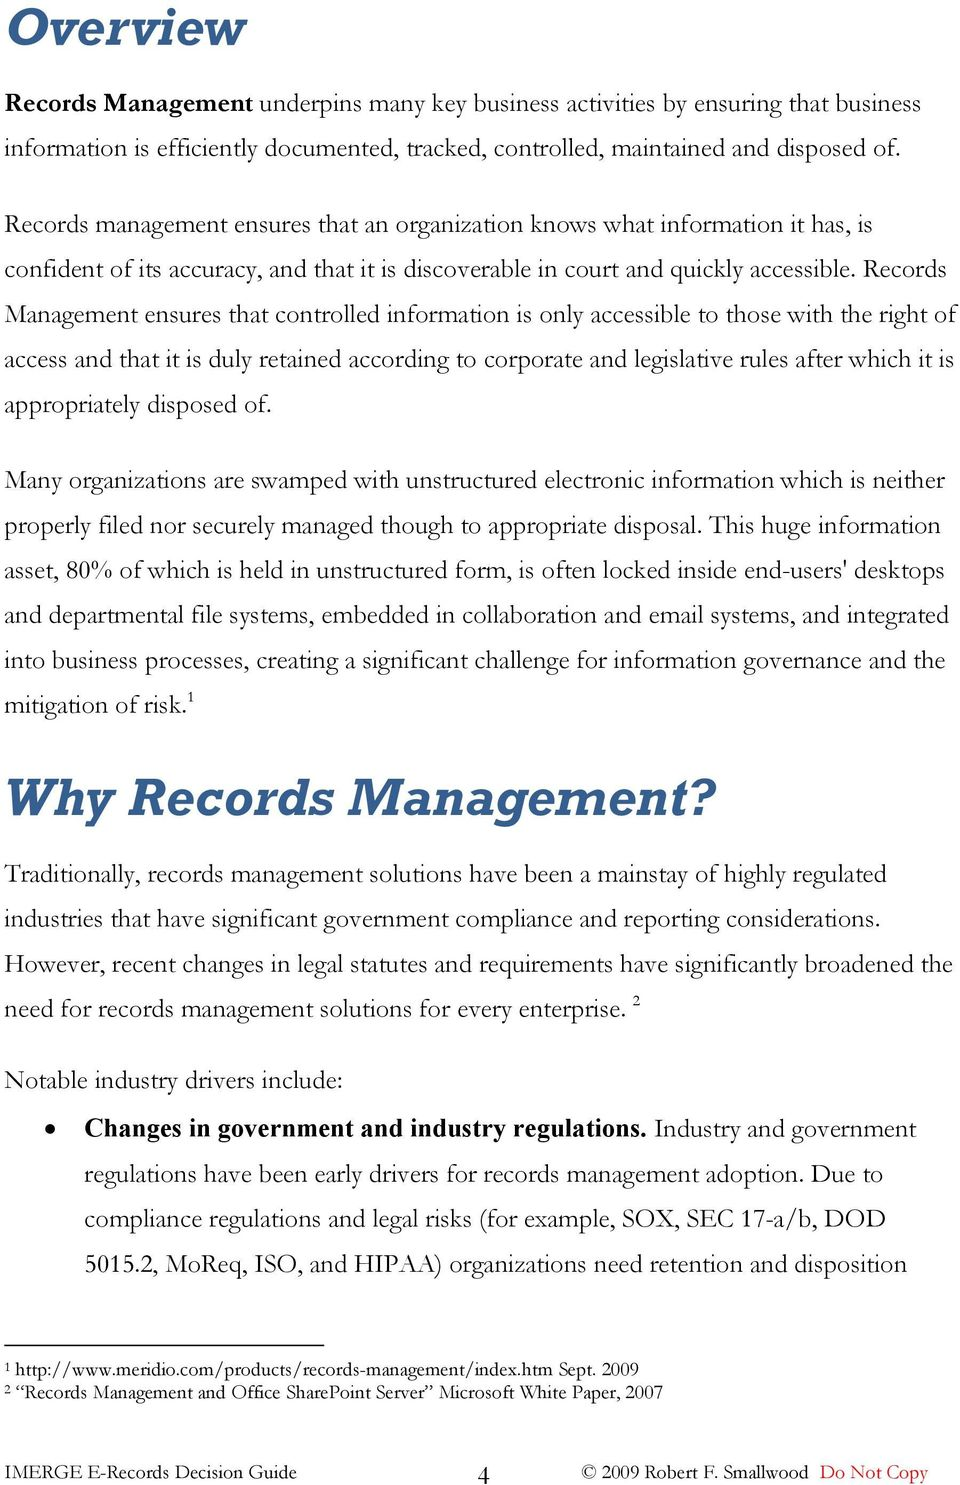 Records Management ensures that controlled information is only accessible to those with the right of access and that it is duly retained according to corporate and legislative rules after which it is